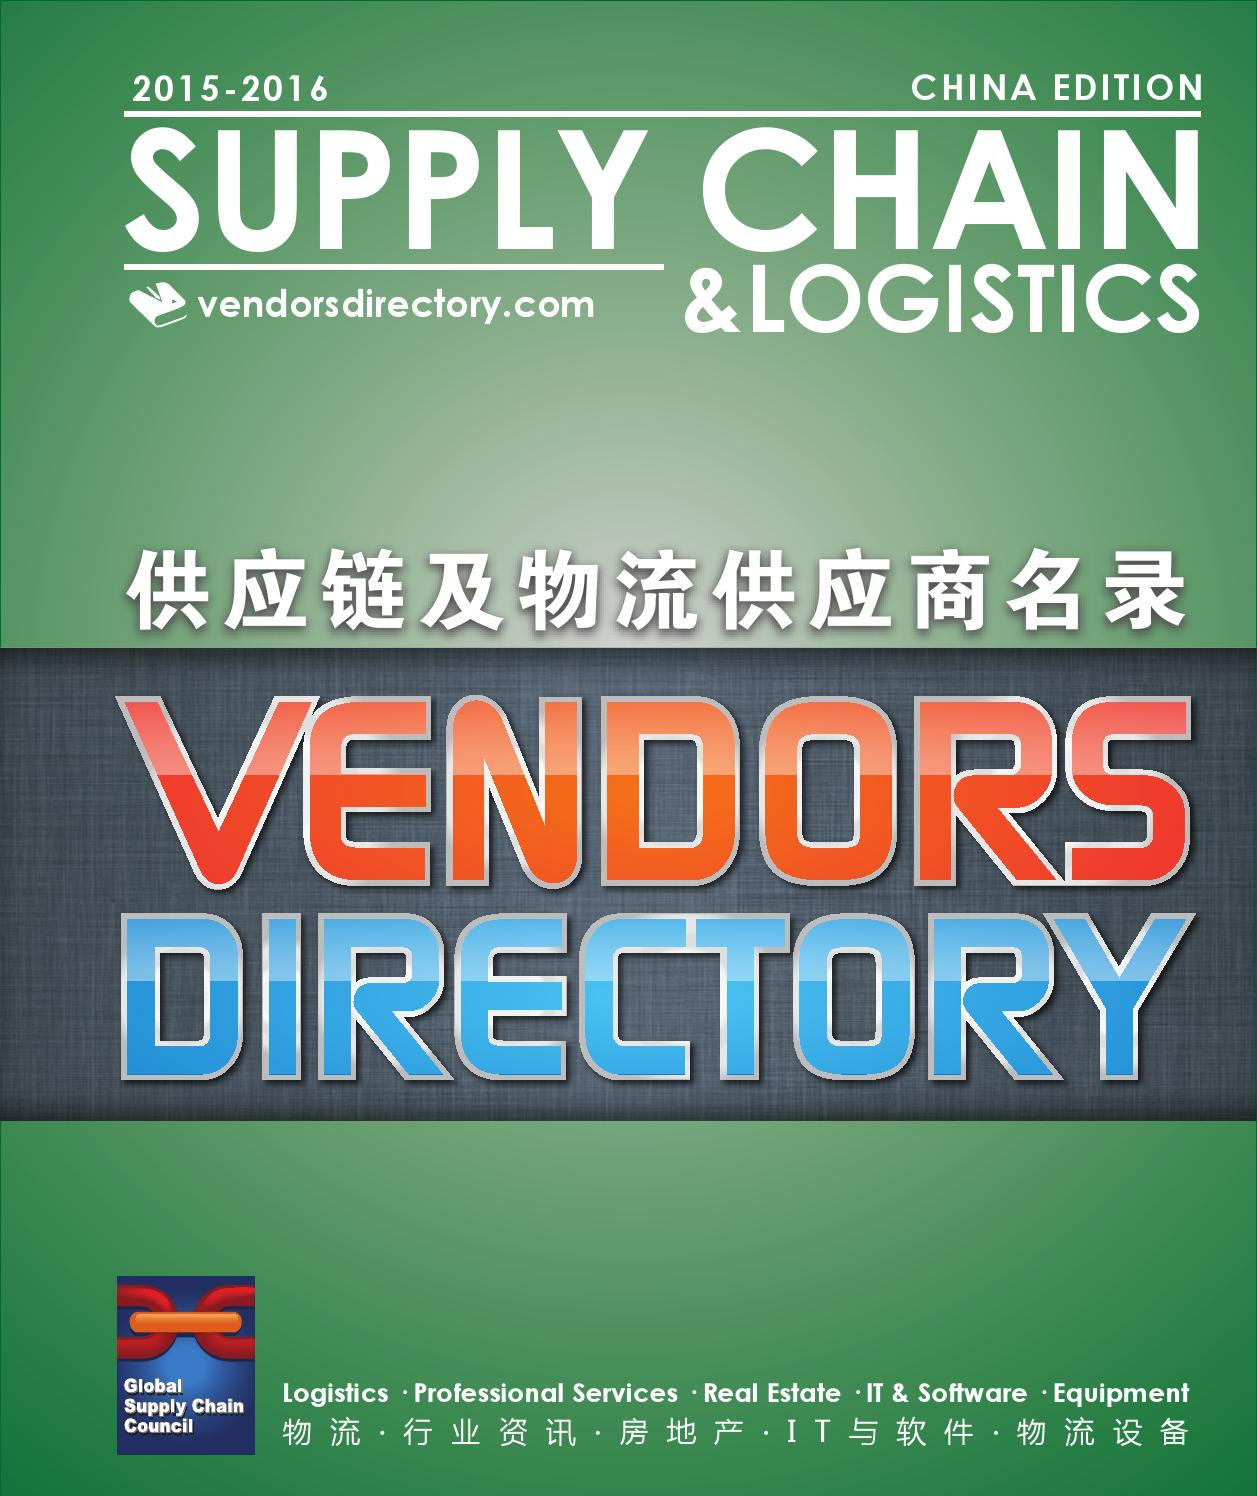 2015 2016 Supply Chain & Logistics Directory, China Edition